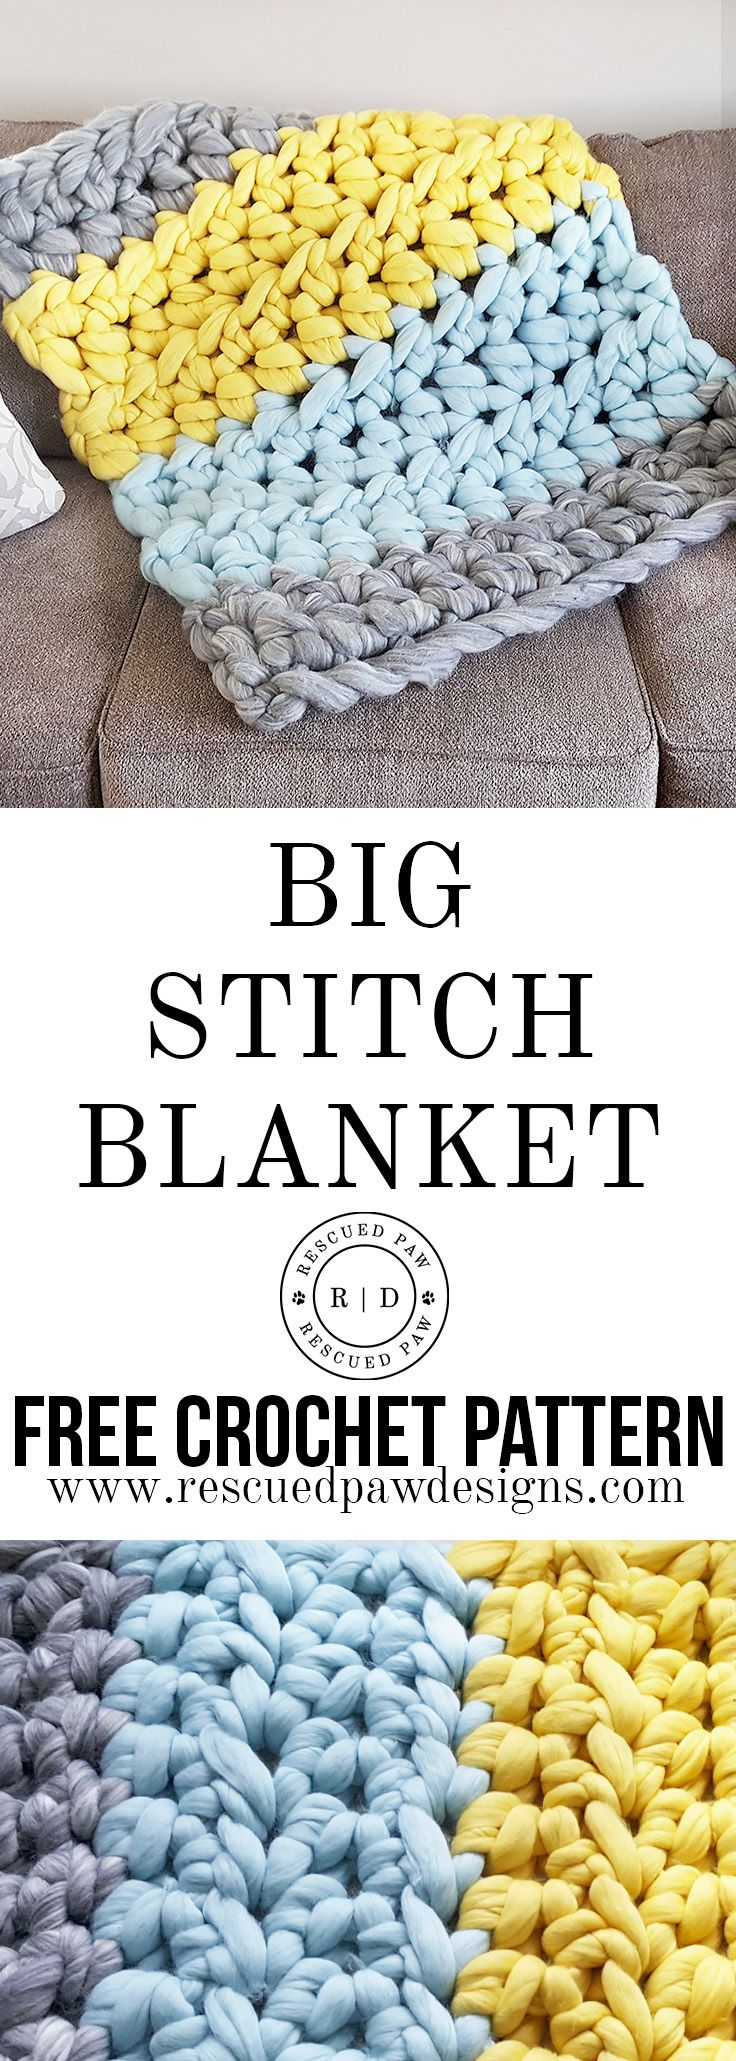 Big Stitch Extreme Crochet Blanket Pattern | Crochet | Pinterest ...